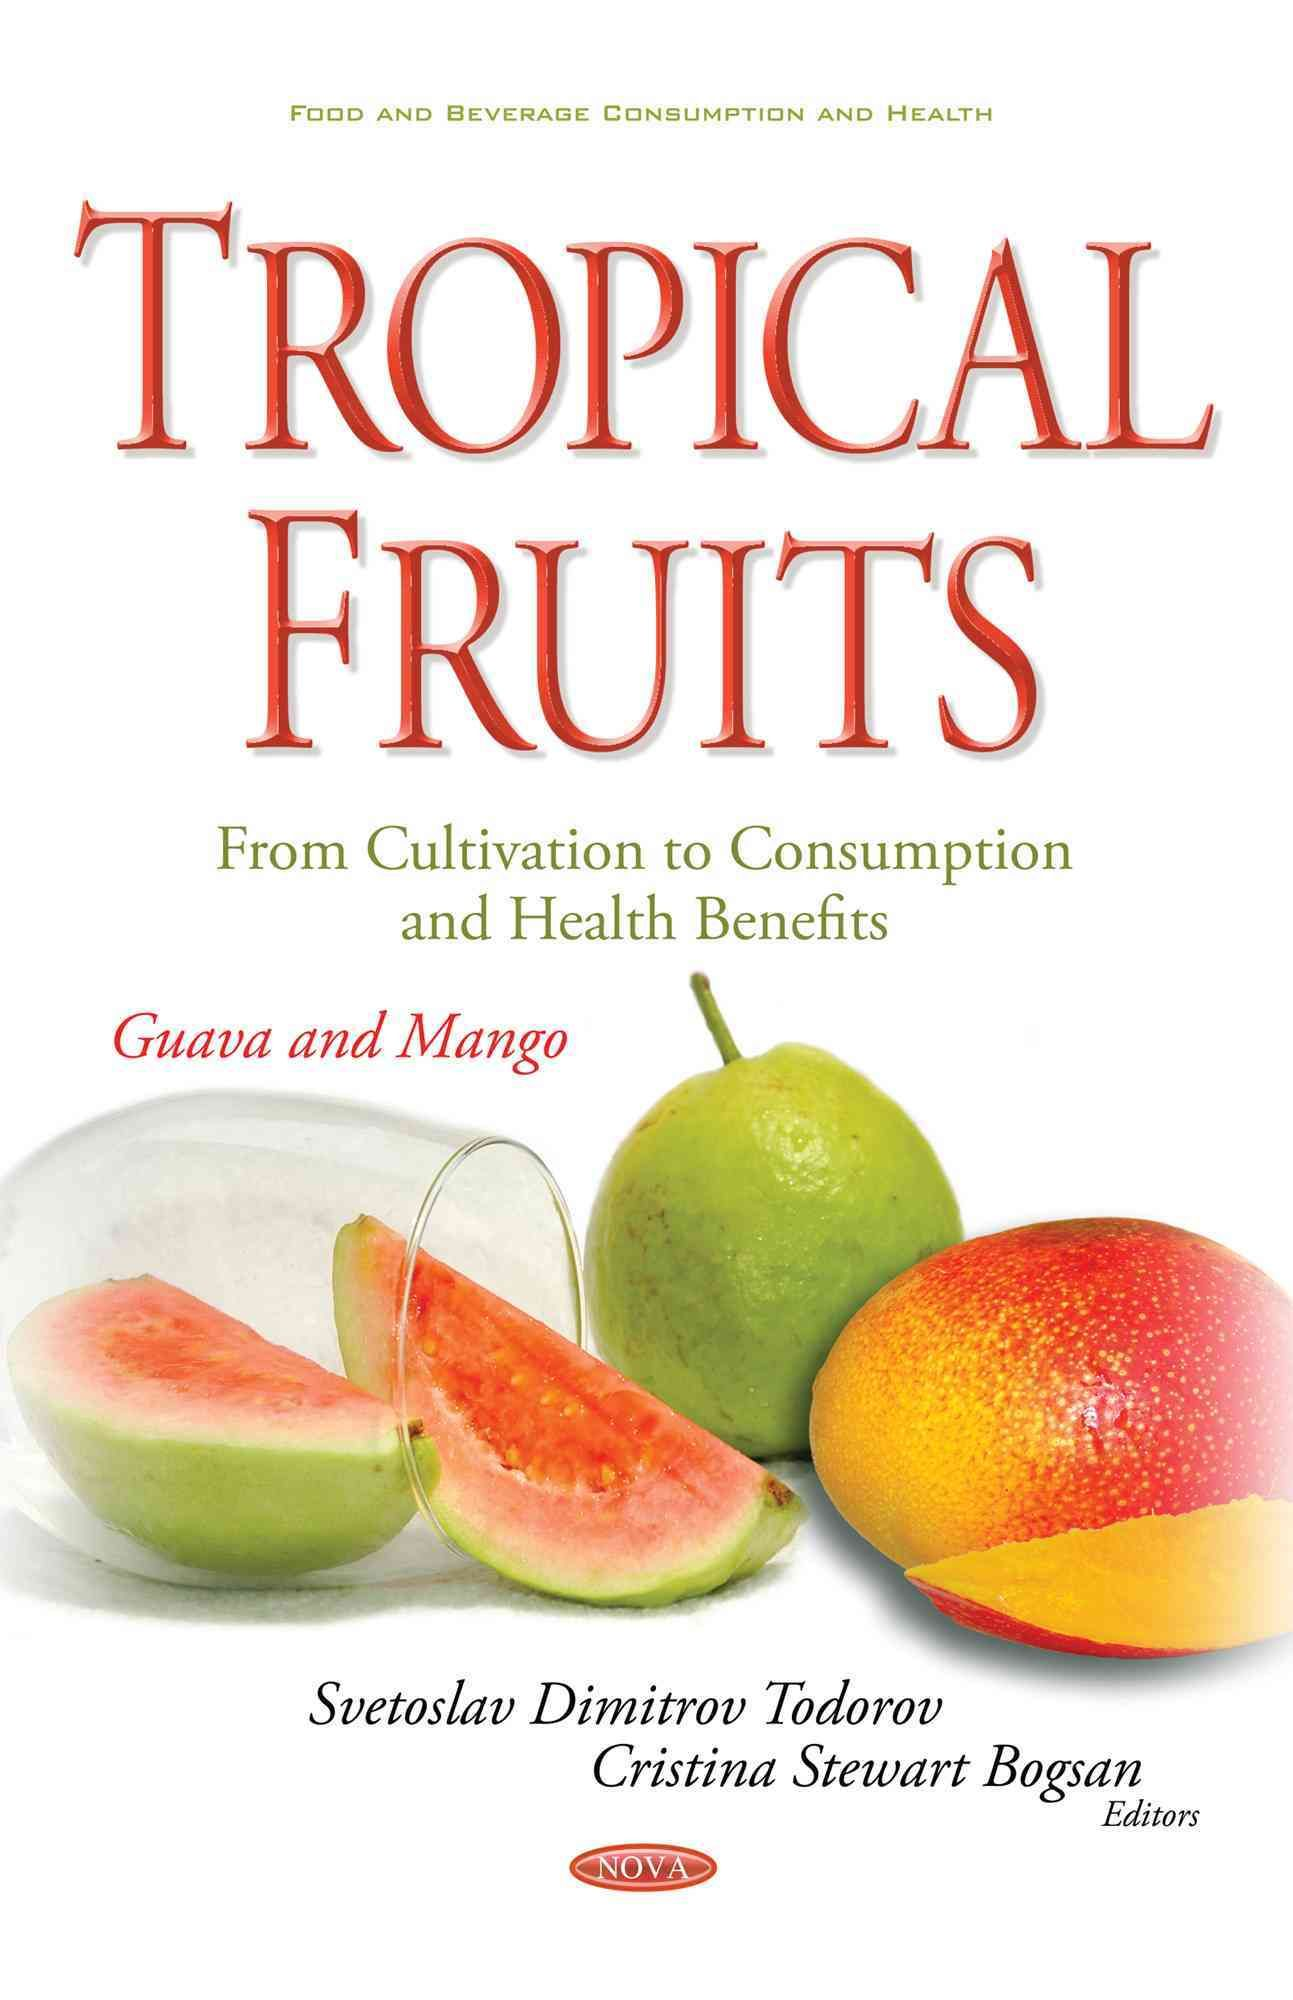 Mango. On the benefits and harms of tropical fruits